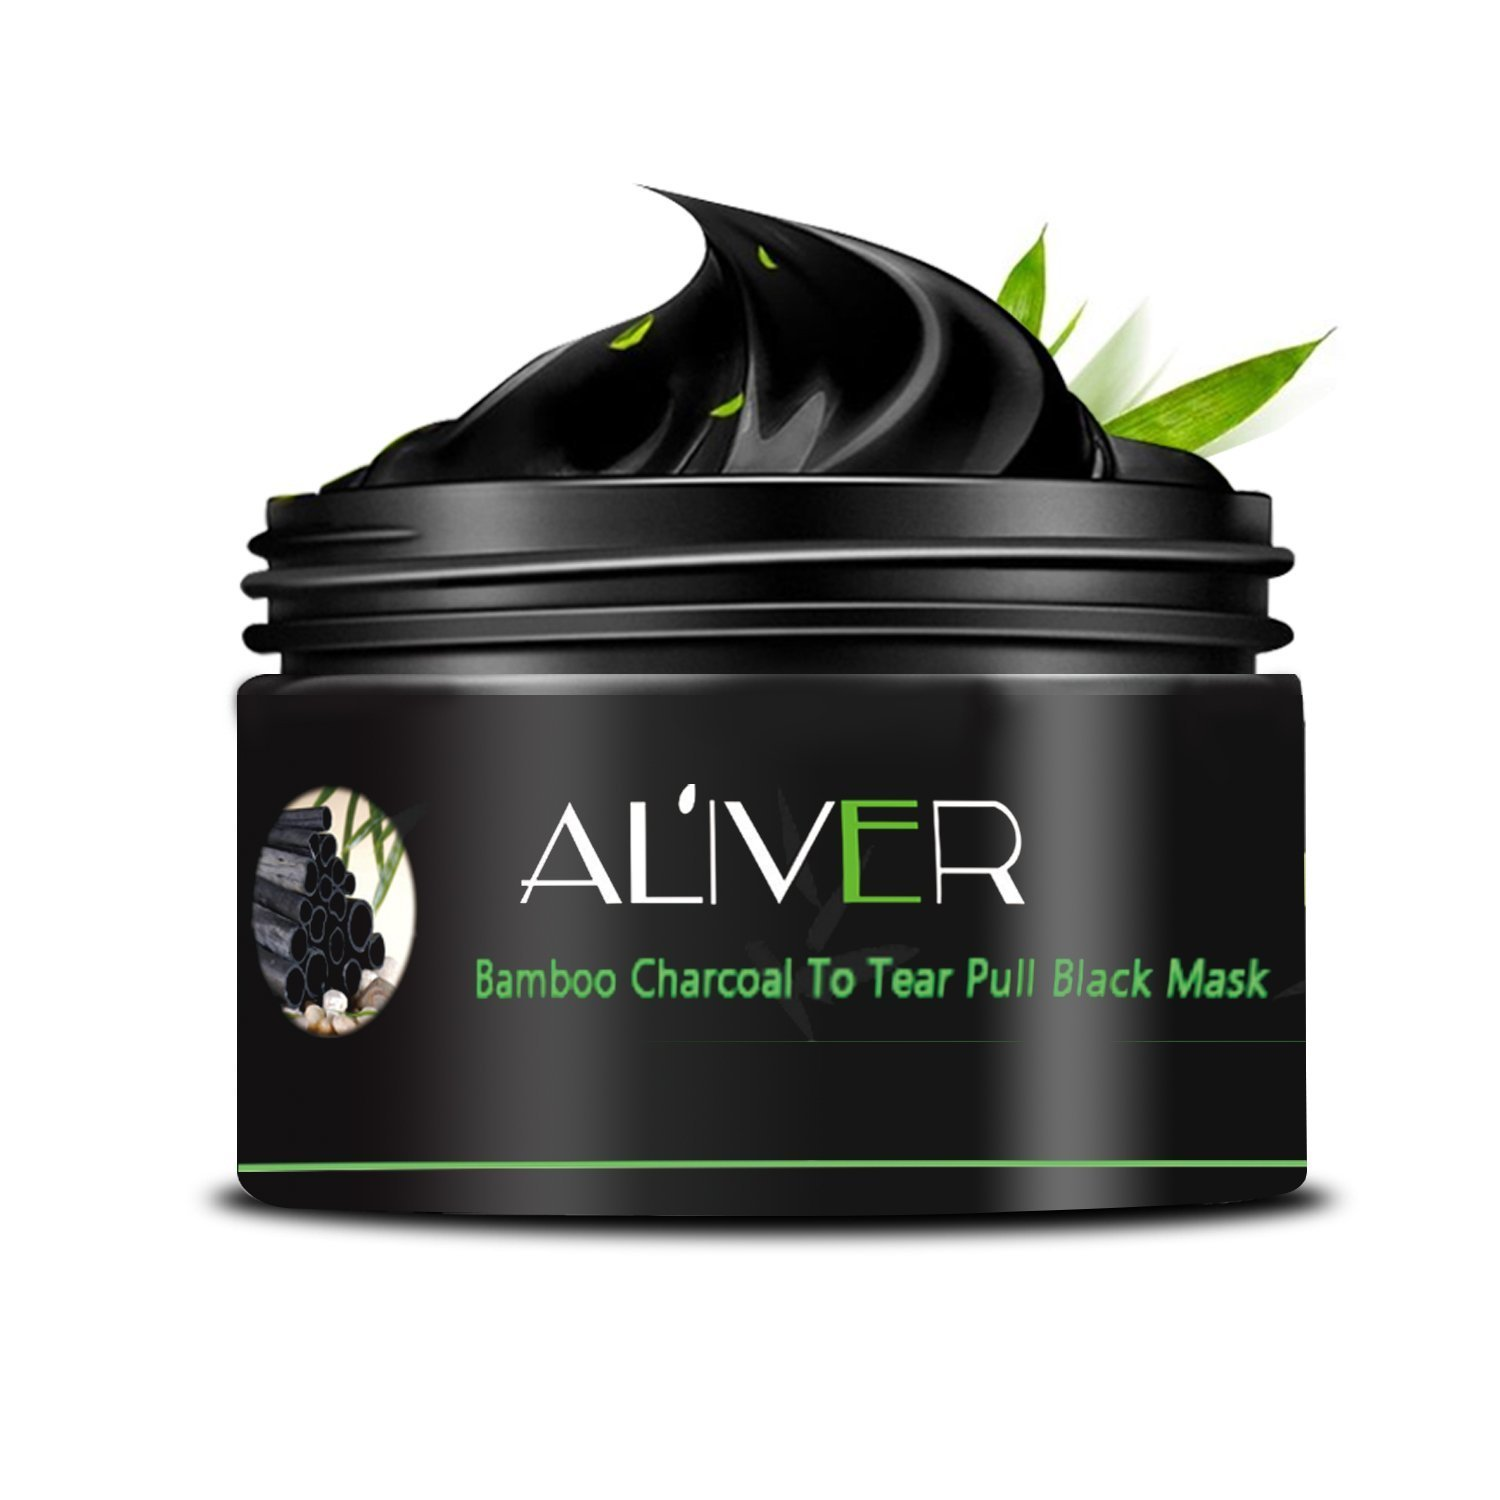 AL'IVER Charcoal Face Mask Black Mask Anti-Aging Peel Off Face Mud Deep Clean Activated Exfoliator 100ml in Jar AL' IVER Beauty